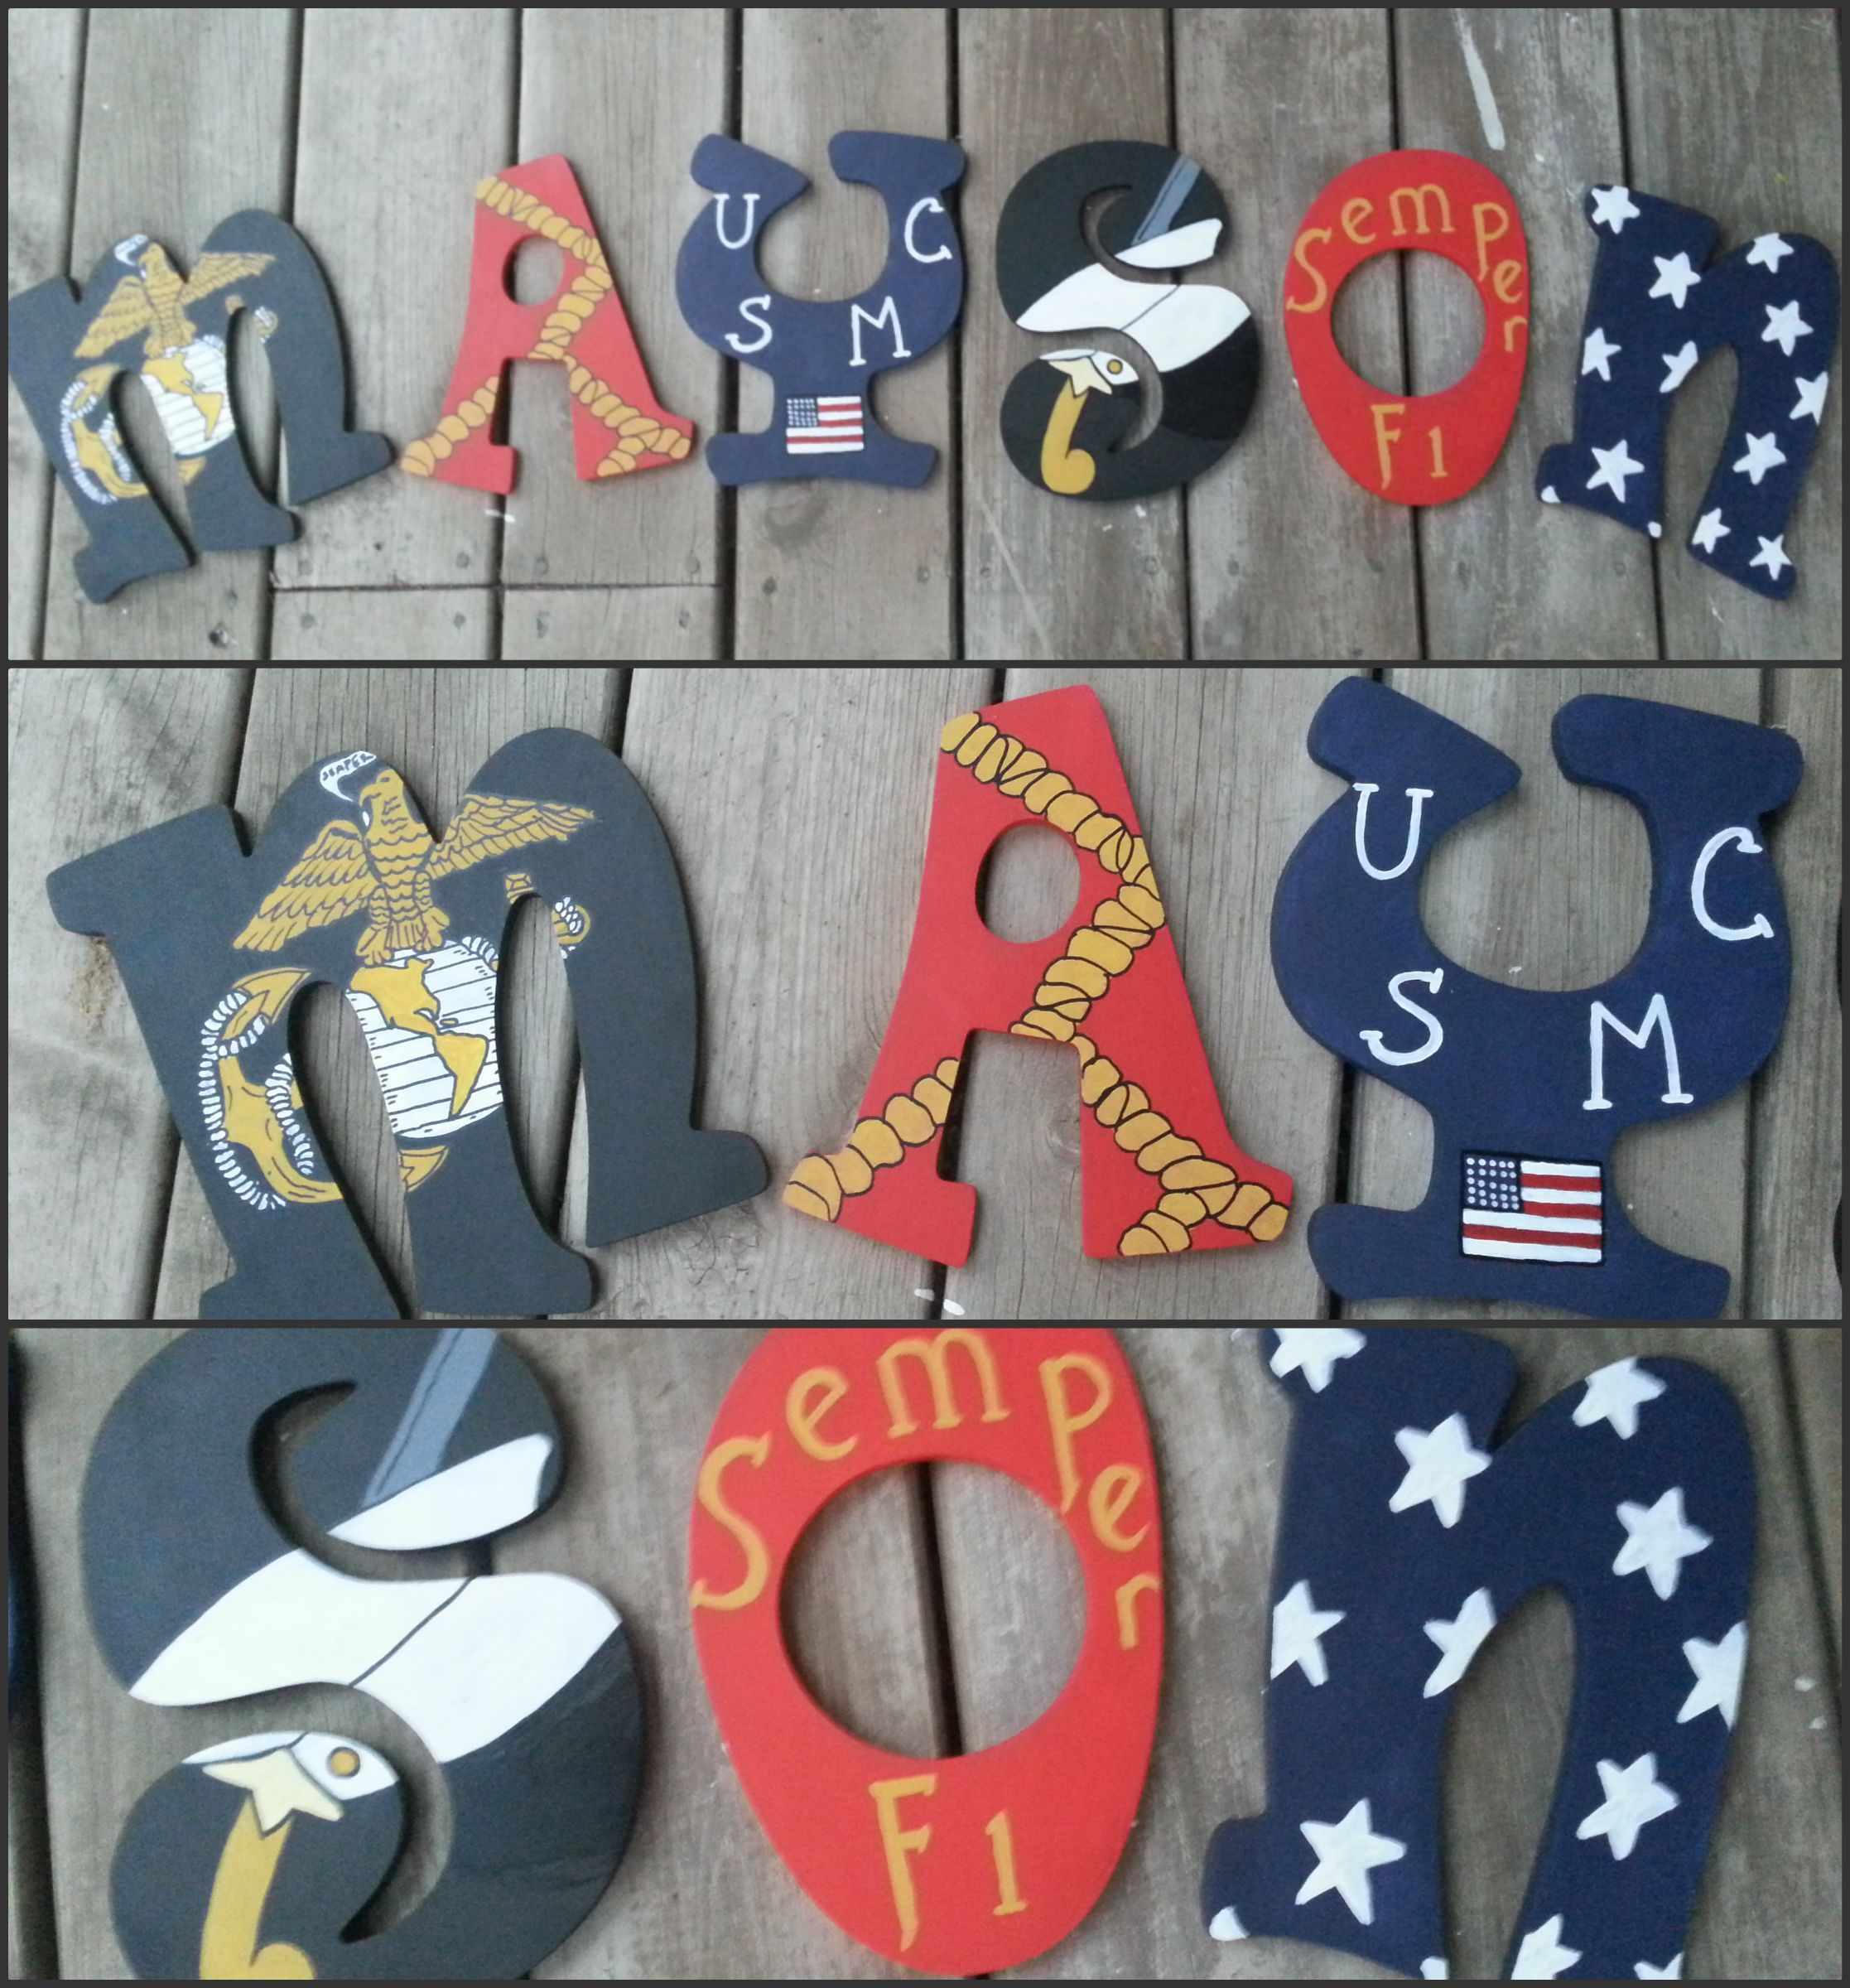 United States Marine Corps themed hand painted letters  Check out  www facebook comUnited States Marine Corps themed hand painted letters  Check out  . Marine Corps Themed Room. Home Design Ideas